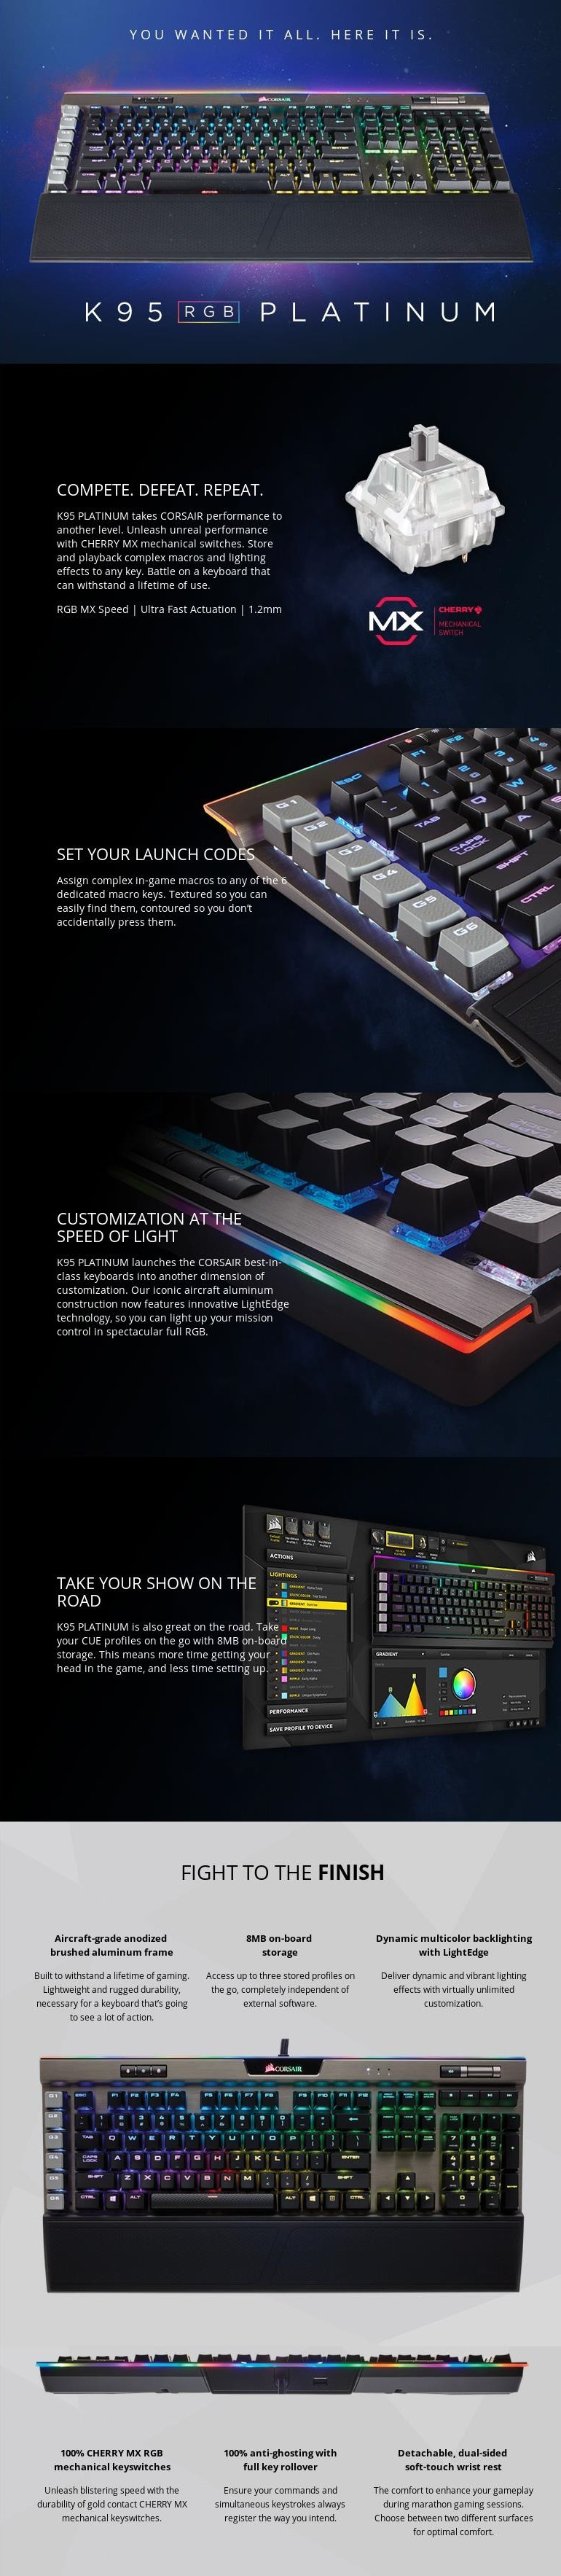 A large marketing image providing additional information about the product Corsair Gaming K95 RGB Platinum Gunmetal Mechanical Keyboard (MX Speed Switch) - Additional alt info not provided